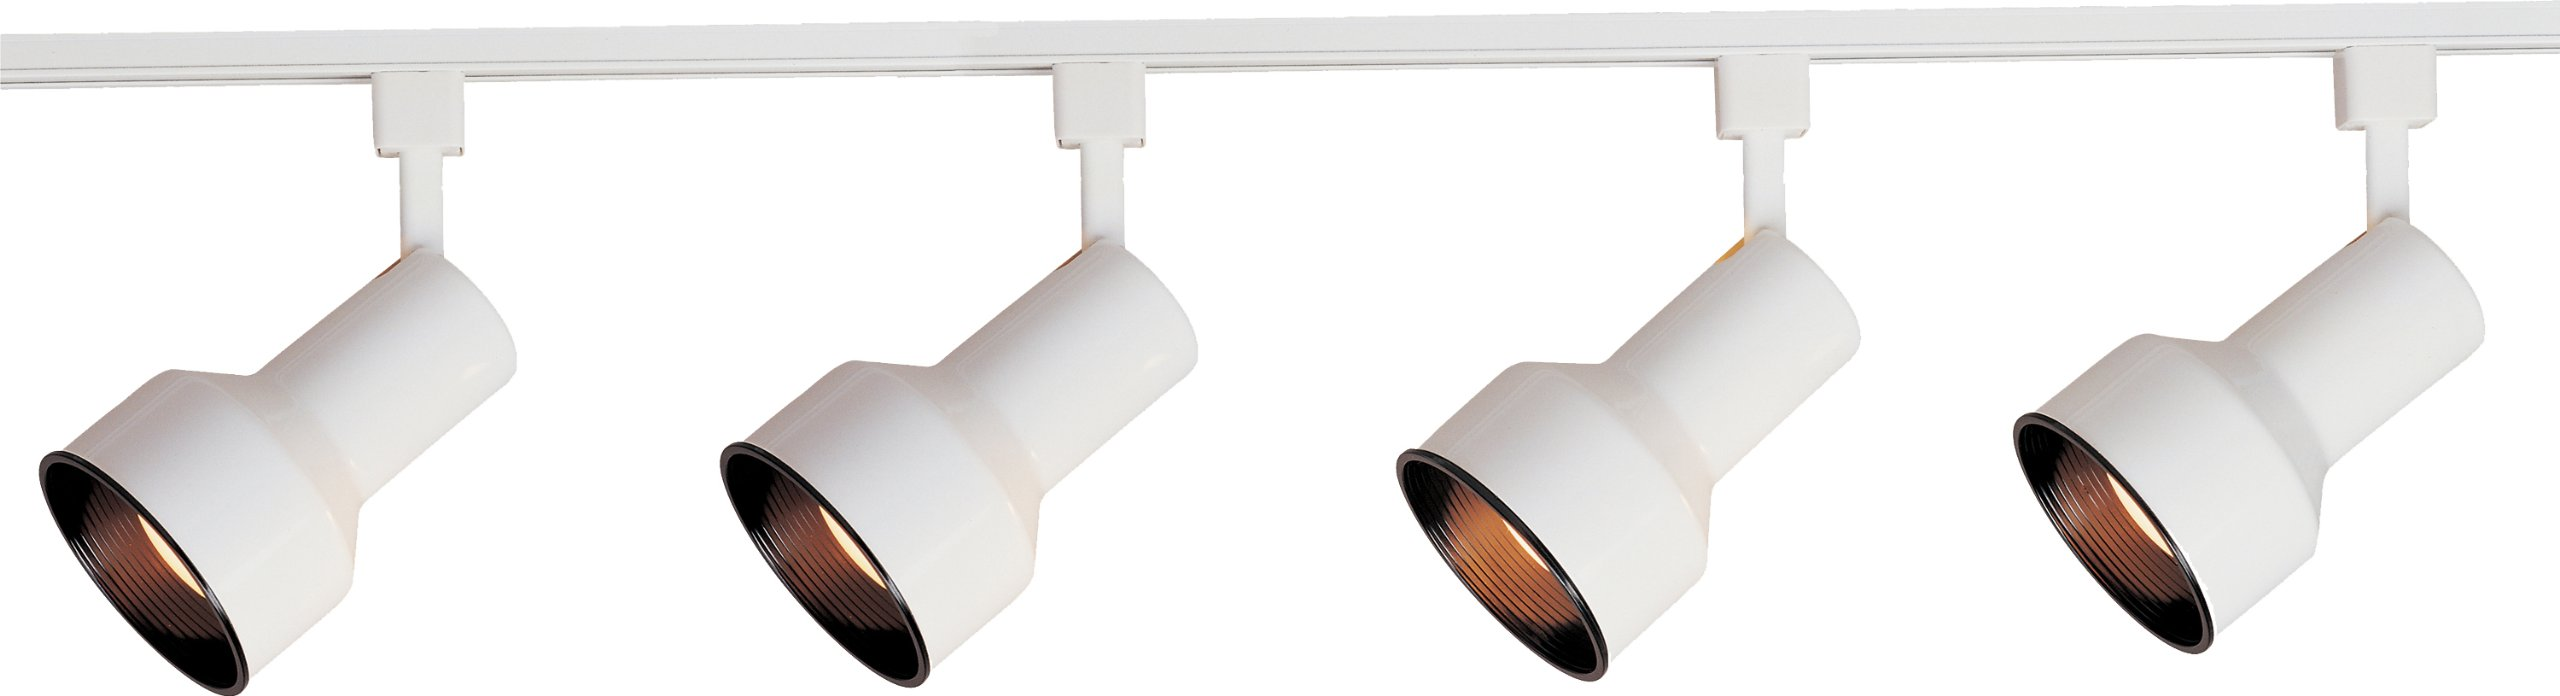 Maxim 92305WT Track 3-Light Track Kit Wall Sconce, White Finish, Glass, MB R30 Incandescent Incandescent Bulb , 20W Max., Dry Safety Rating, 2900K Color Temp, Standard Dimmable, Shade Material, 1125 Rated Lumens